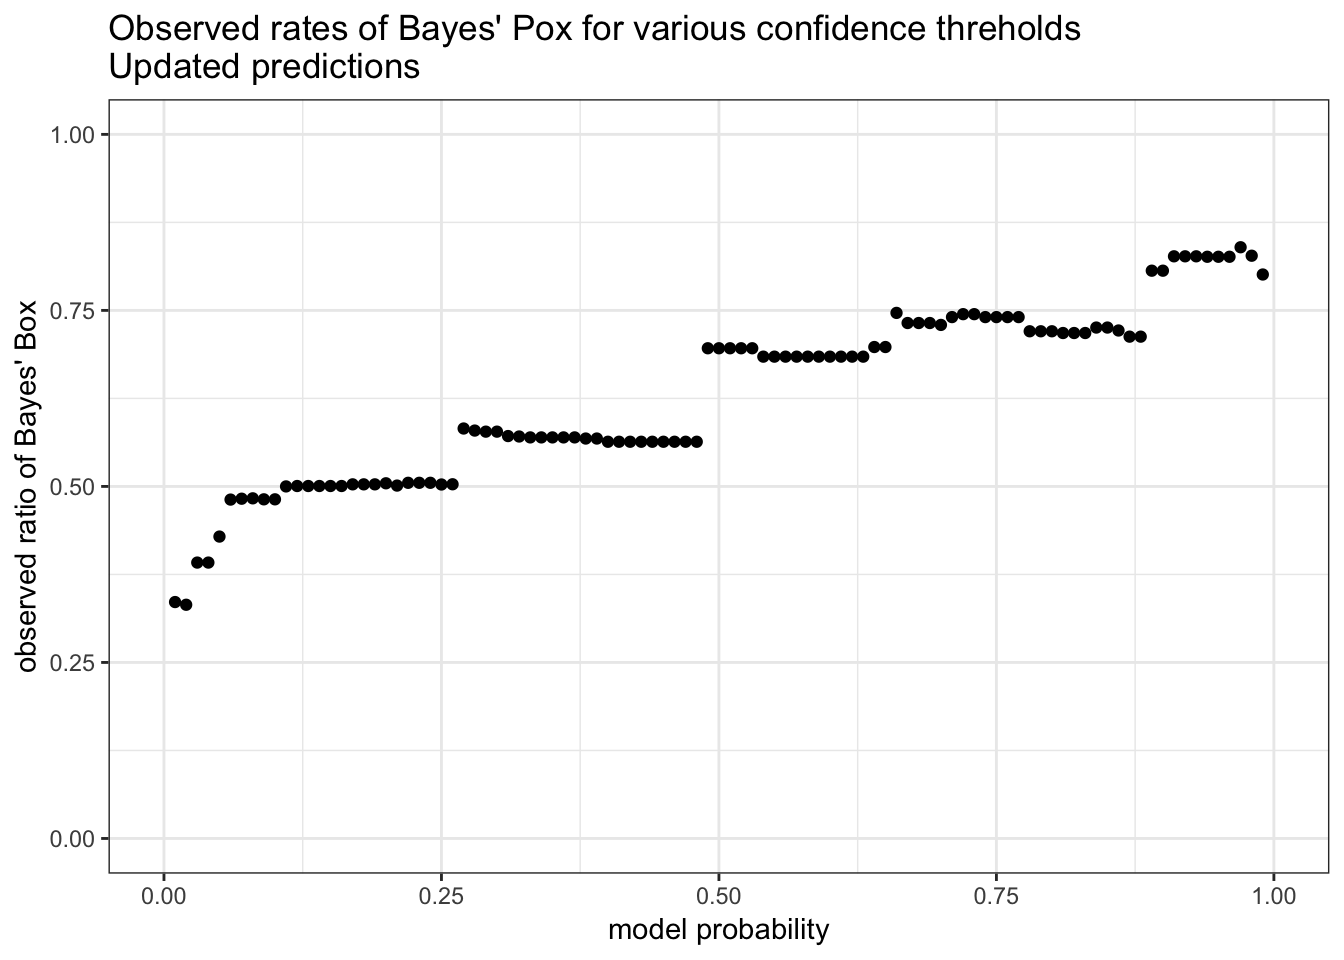 With our updated prior, our model's beliefs are much closer to the empirical ratio of Bayes' Box to Frequentist Fever.